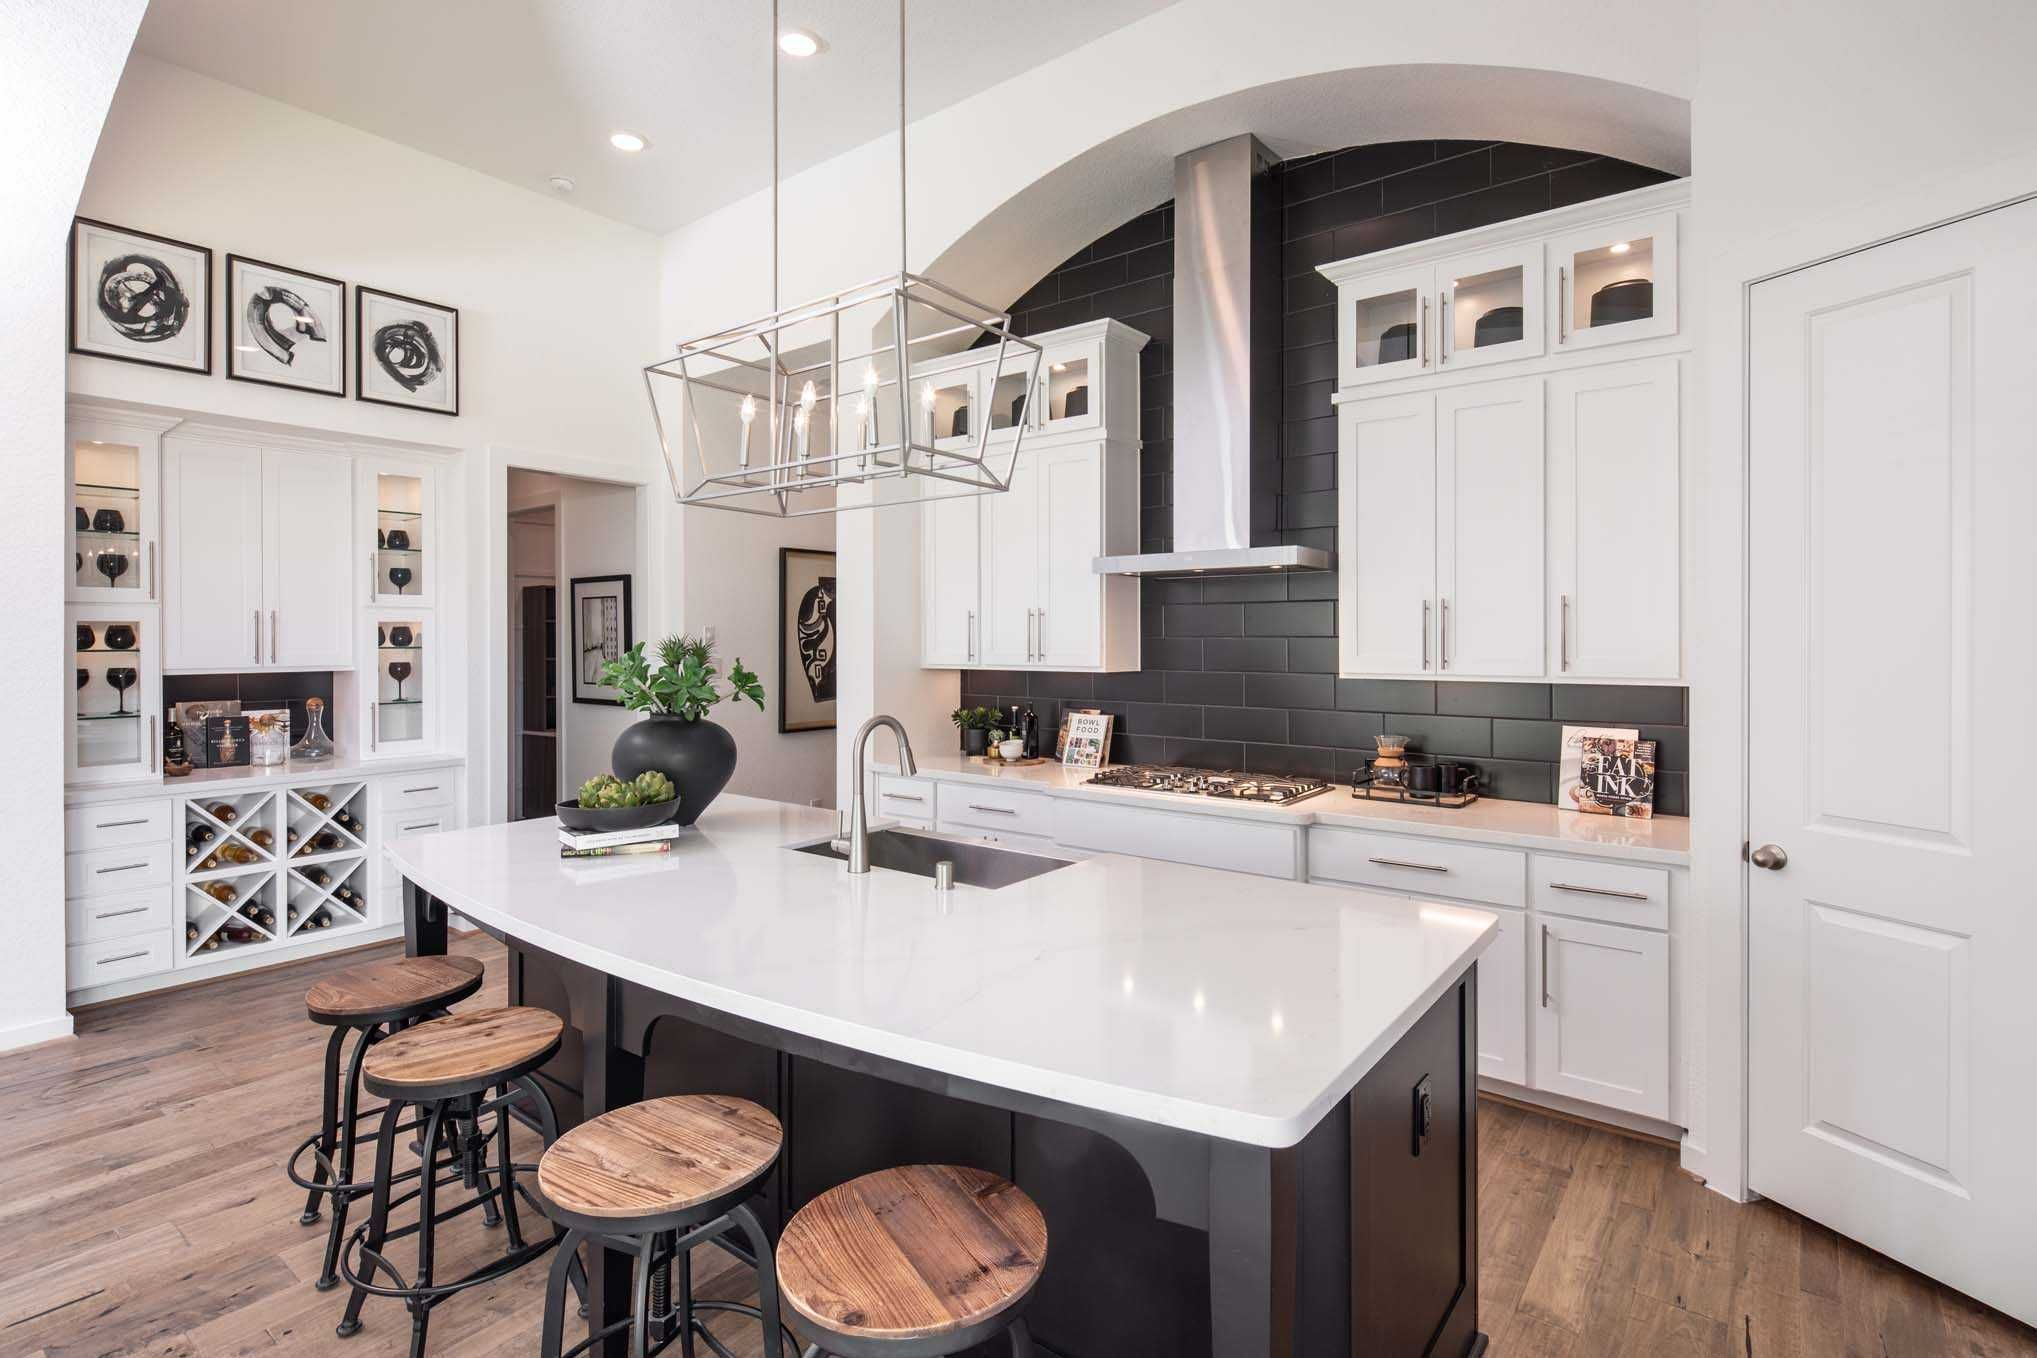 Kitchen in highland homes 540 plan at 114 canary island